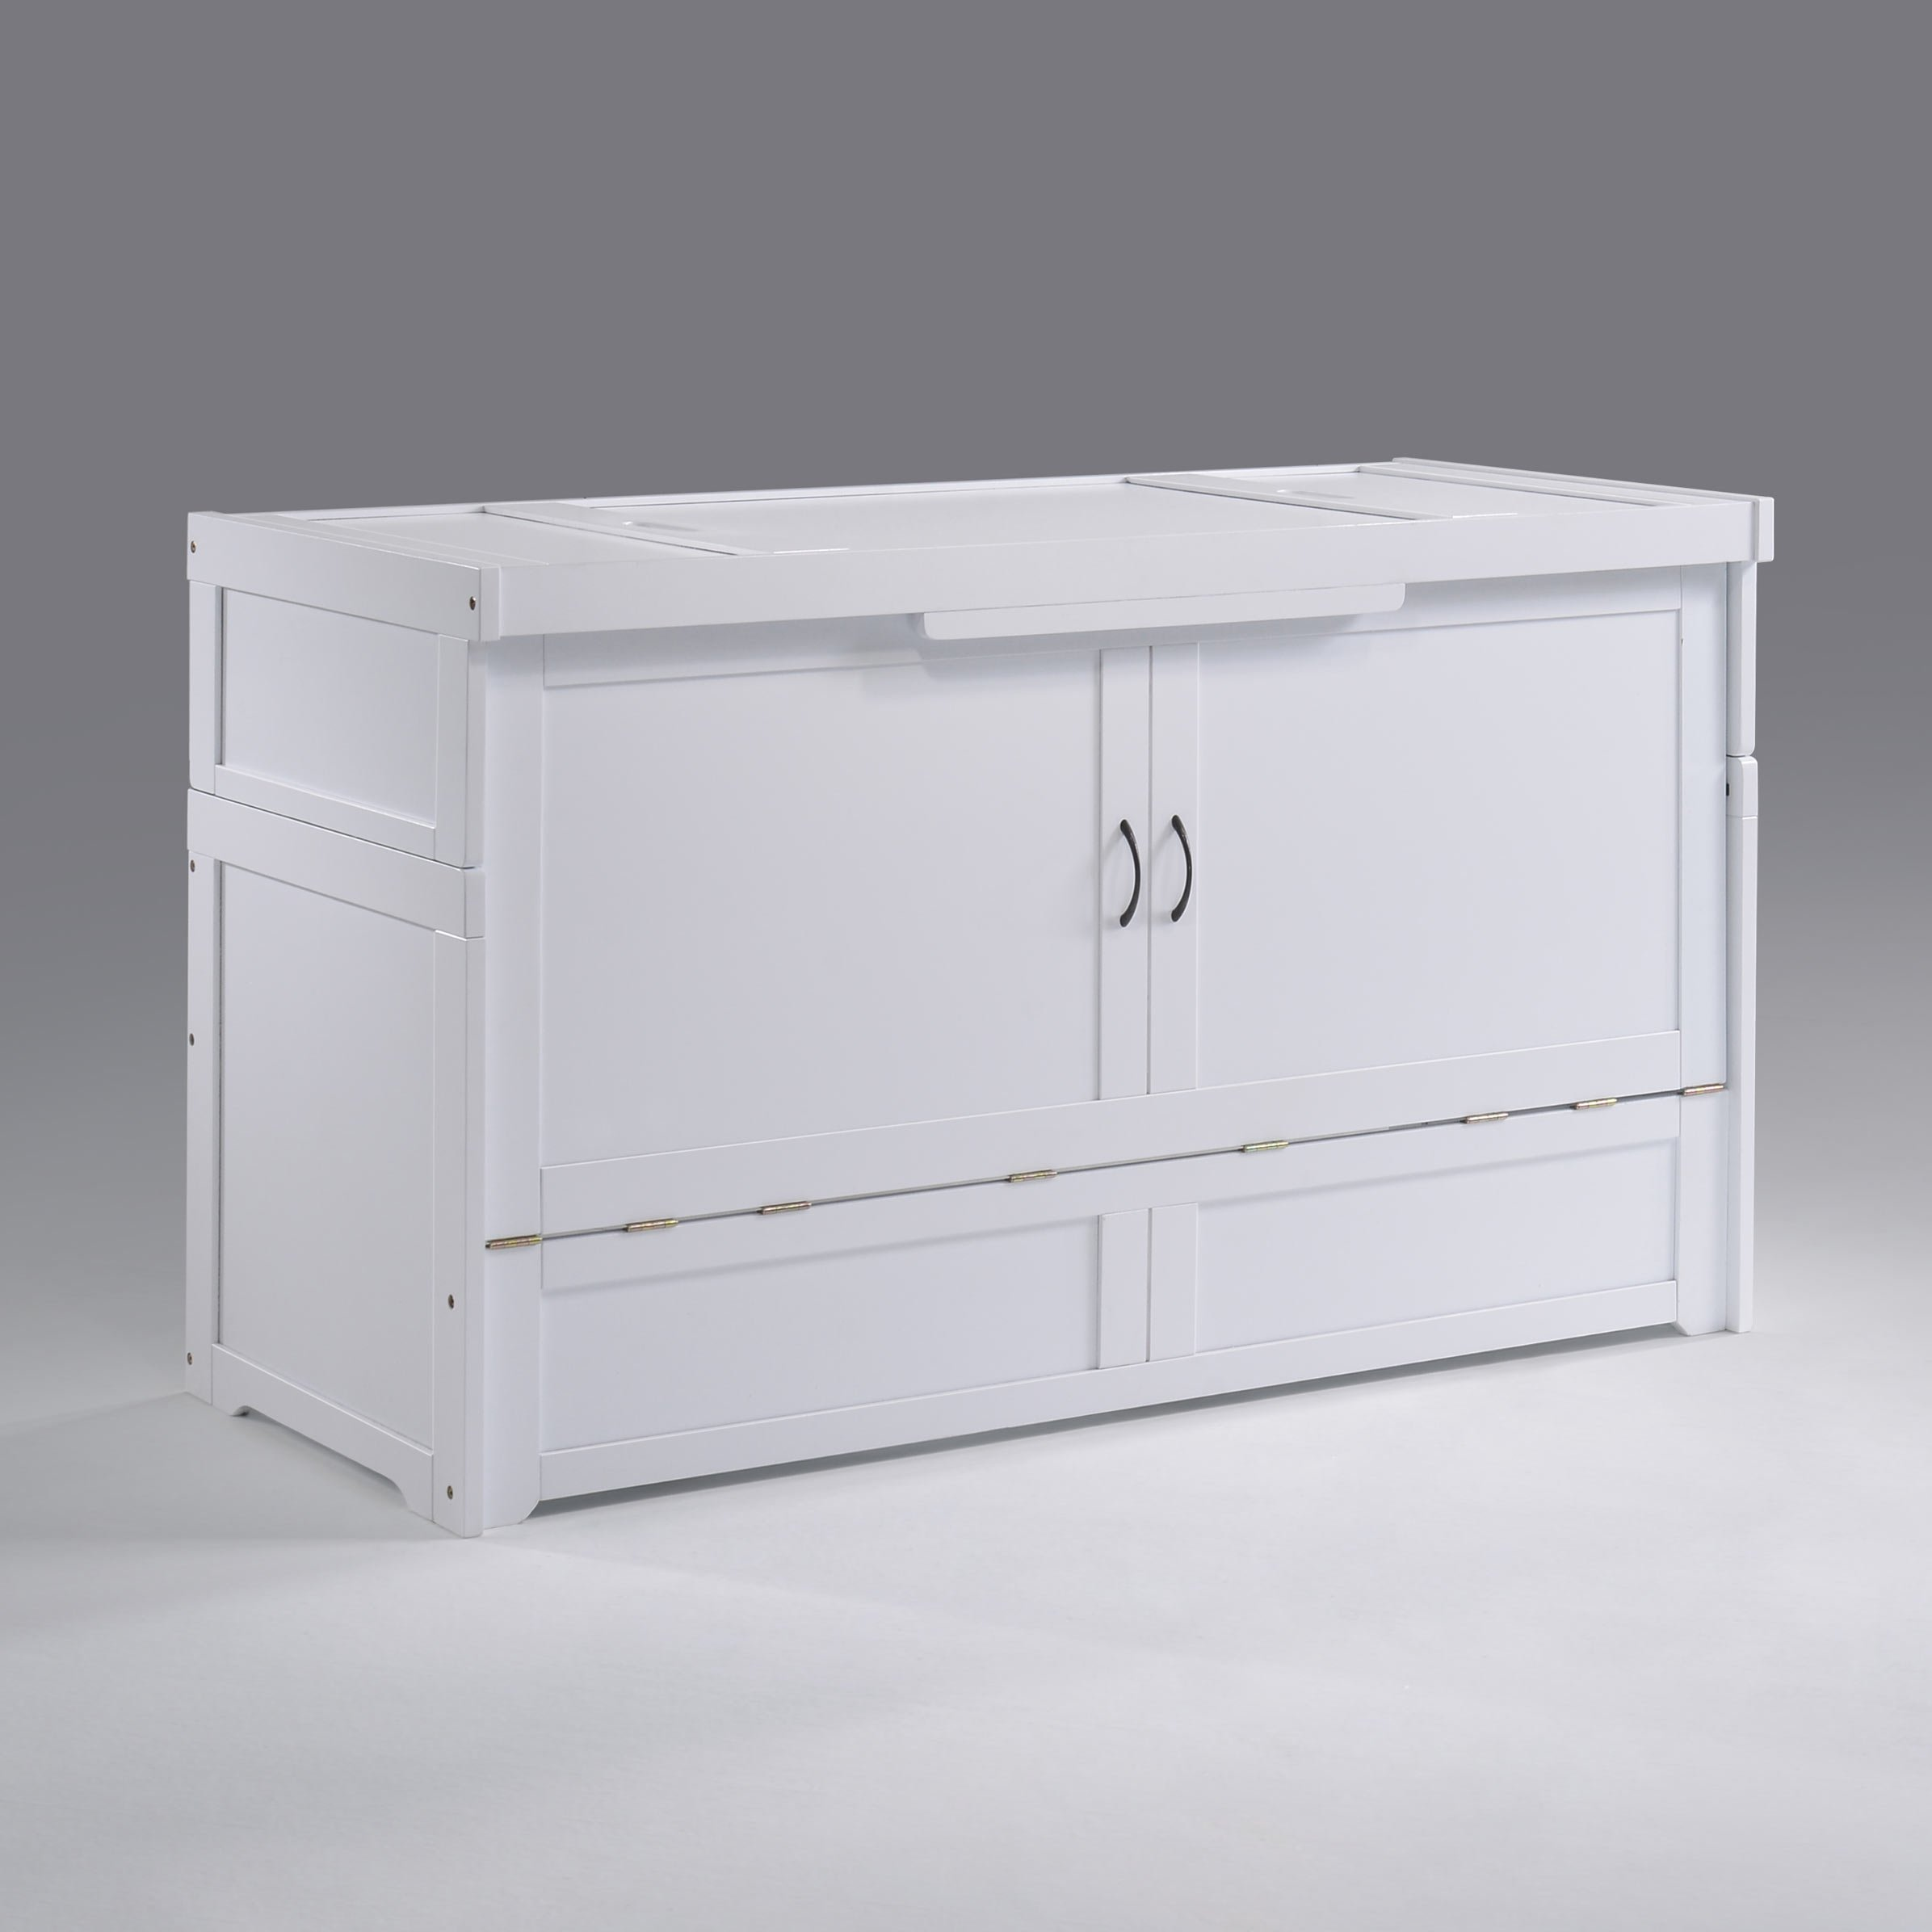 Cube 2 Queen Murphy Cabinet Bed White By Night Day Furniture